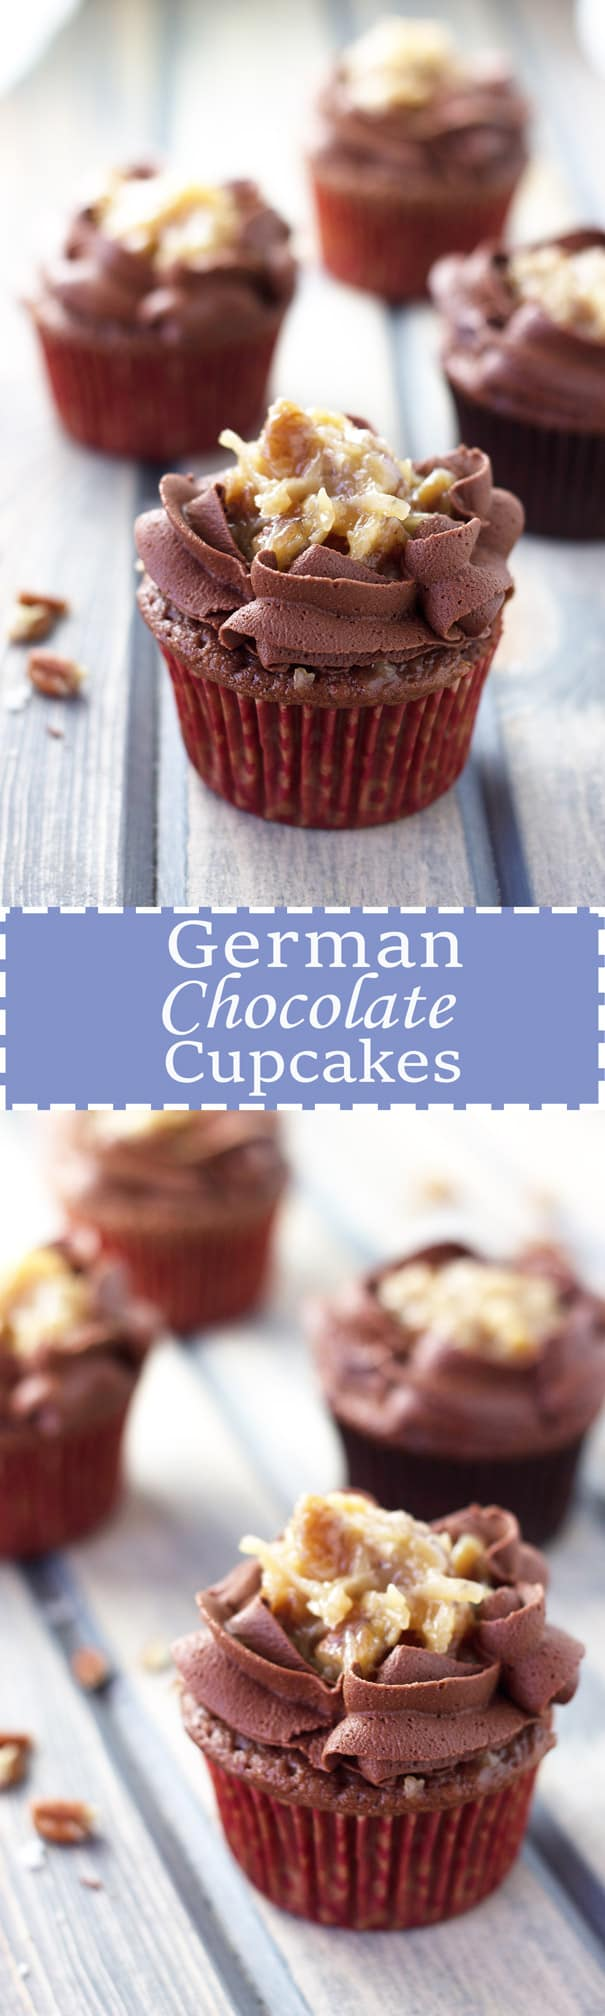 German Chocolate Cupcakes | Countryside Cravings